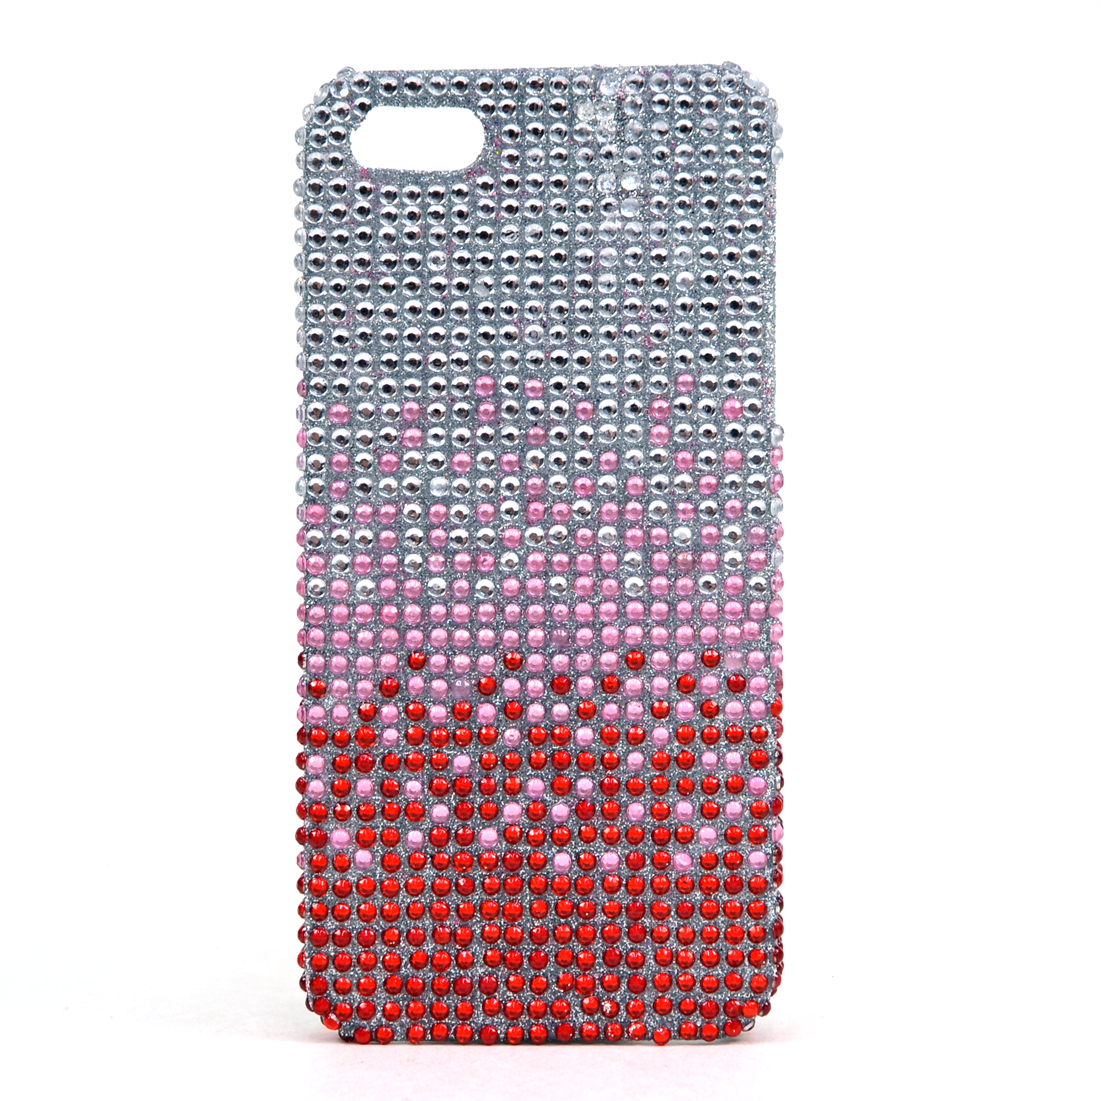 Dasein® Rhinestone Embellished Gradient Cell Phone Case for iPhone 5